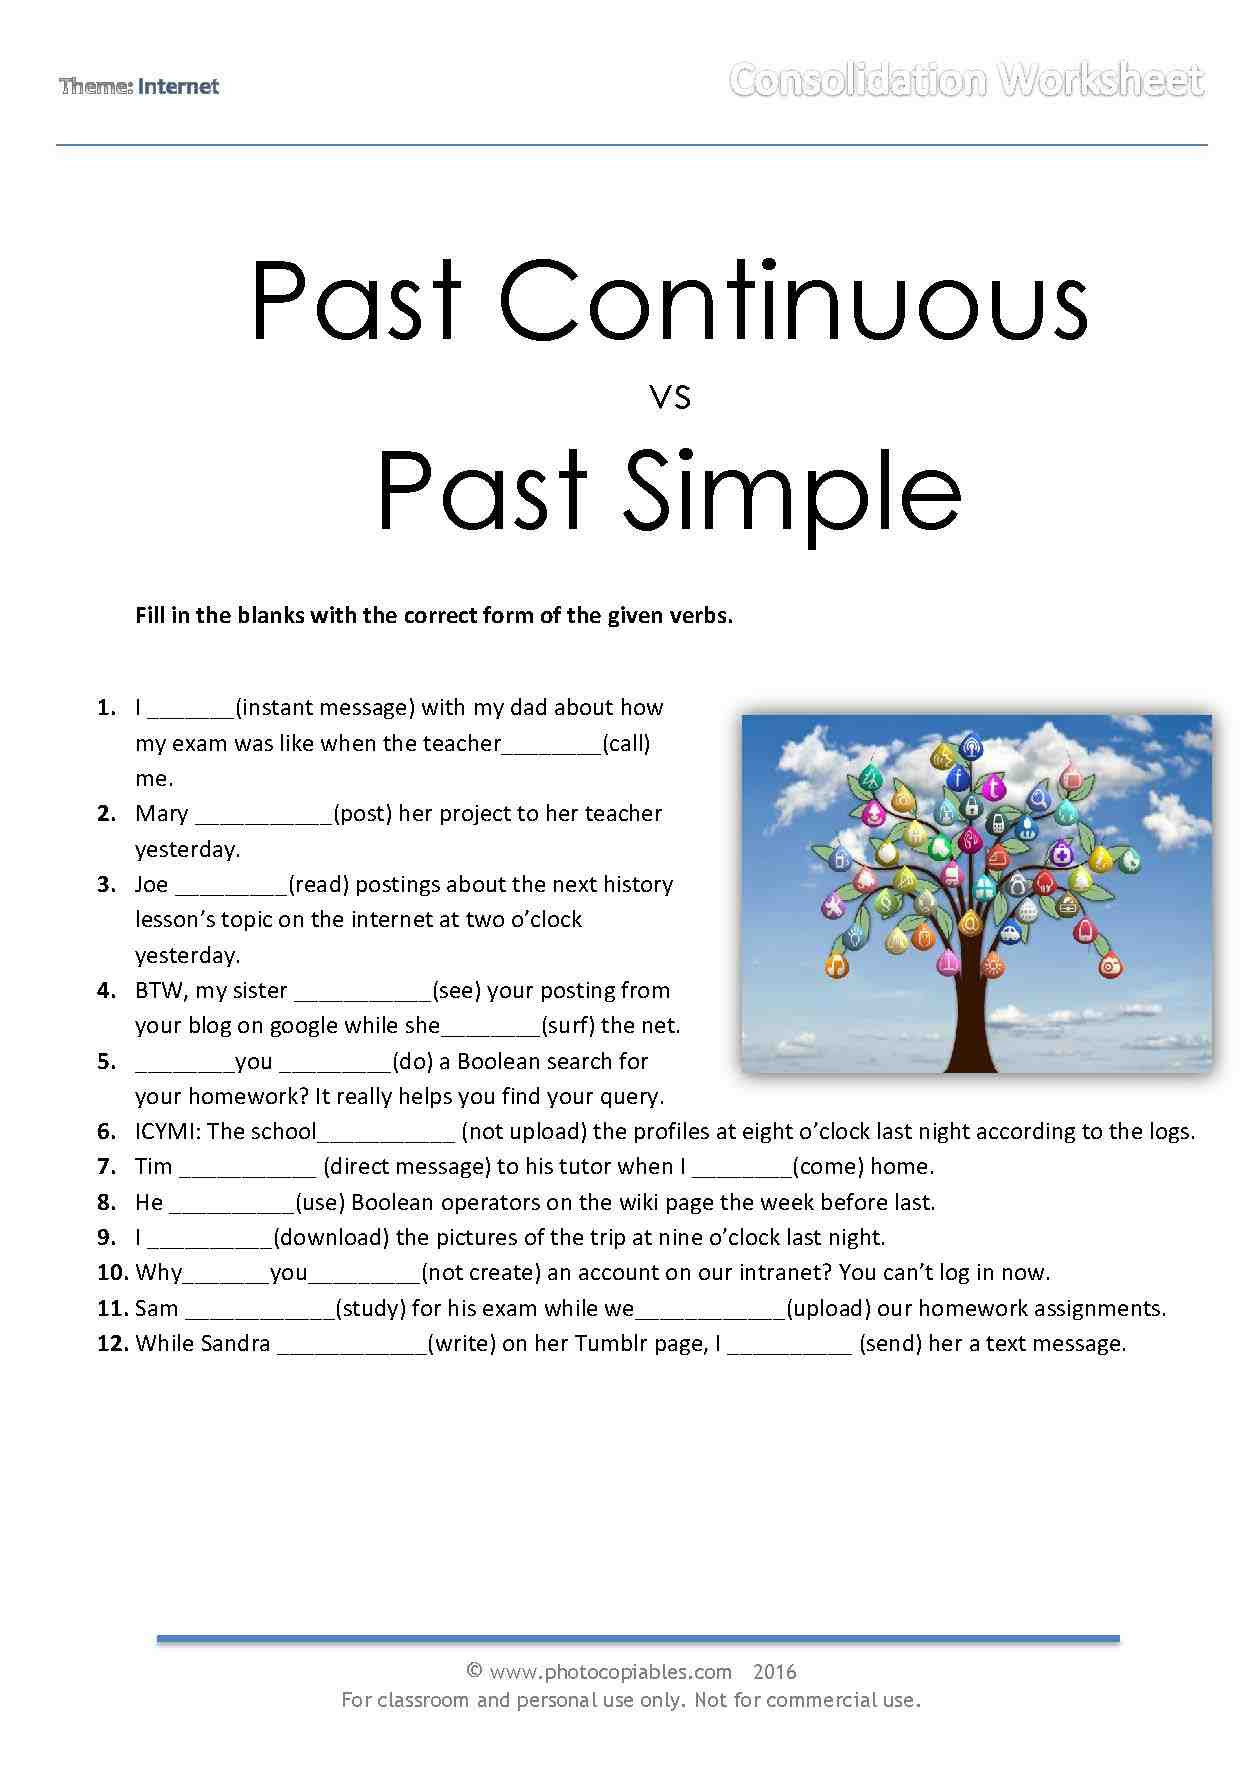 Worksheets Consolidation Worksheet past continuous vs simple consolidation online quiz quiz